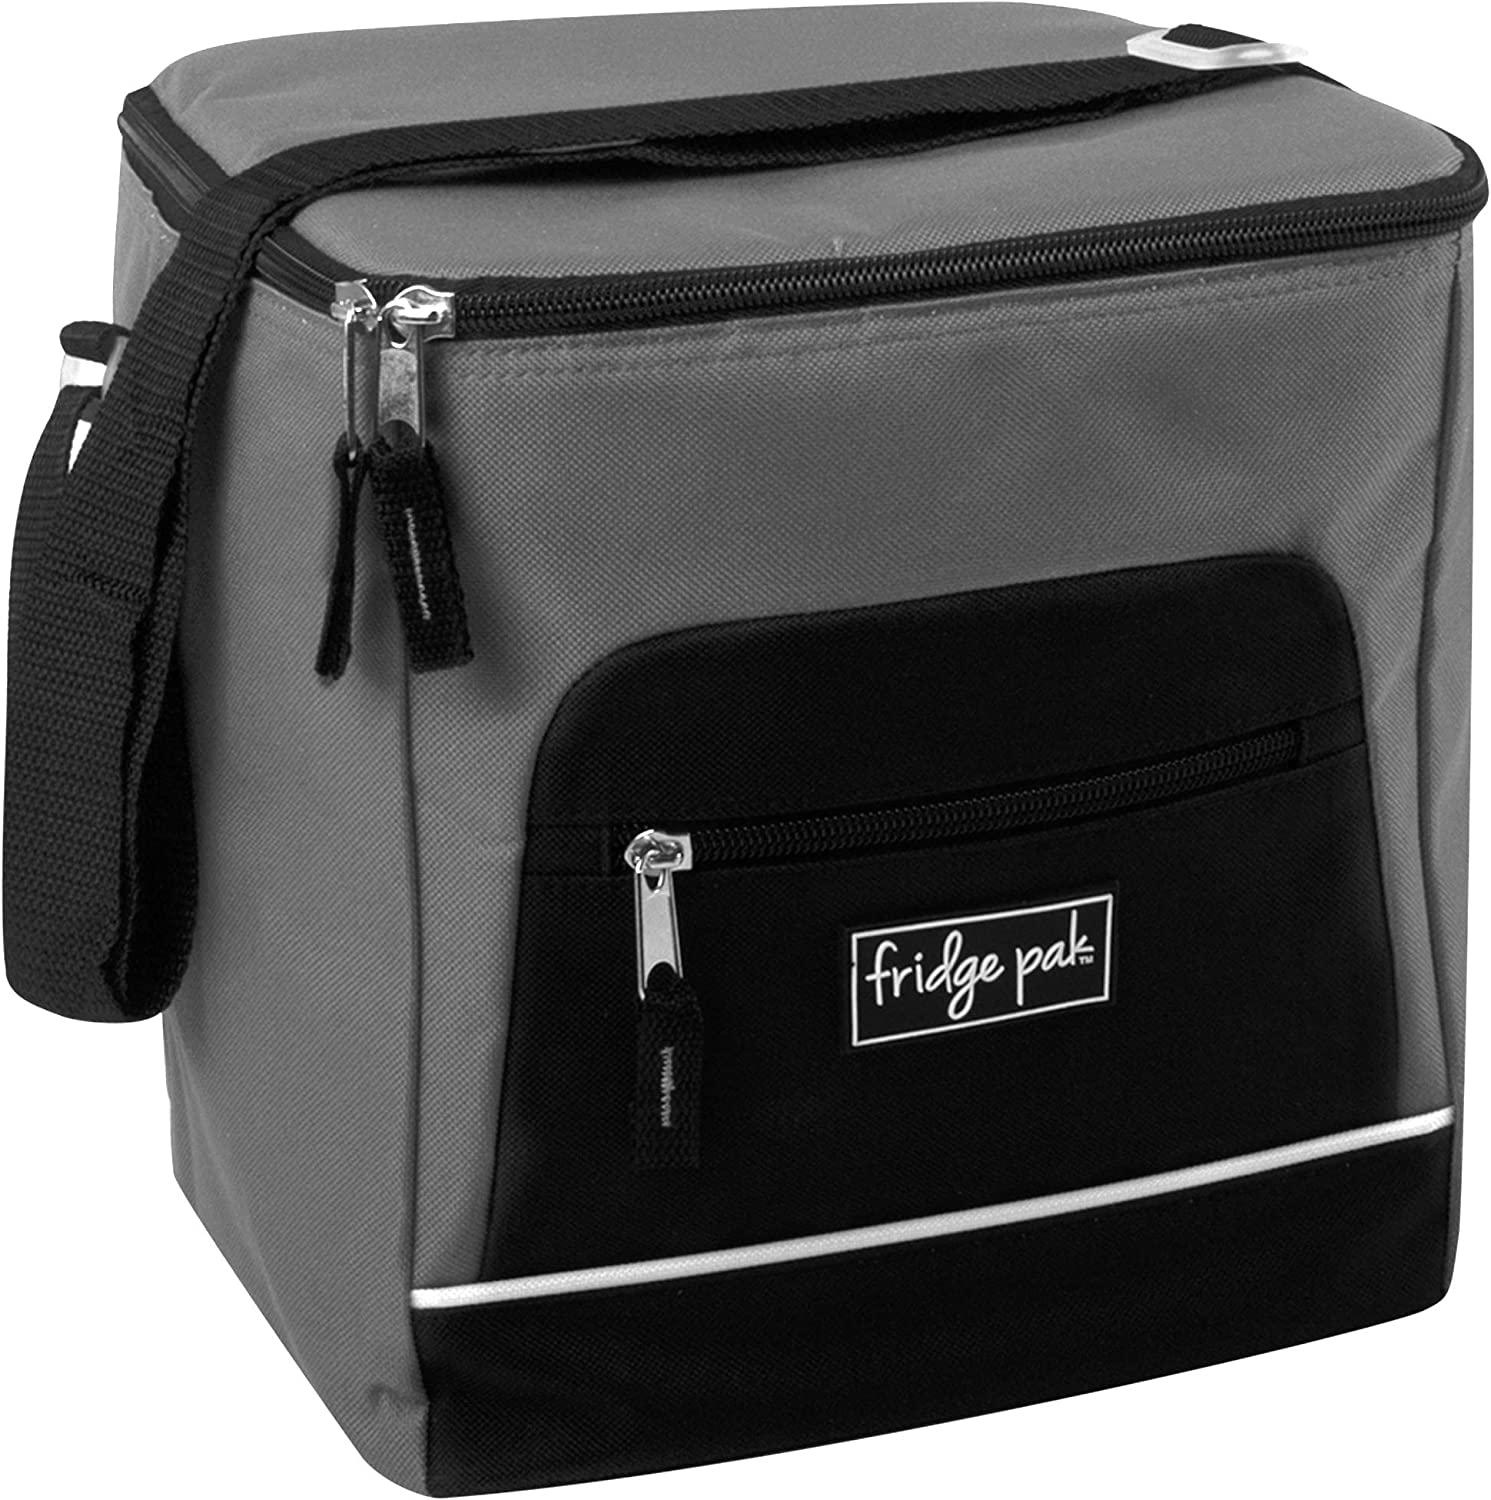 Red Fridge Pak Insulated 18 Can Large Capacity Insulated Cooler Bag and Extra Large Adult Lunchbox